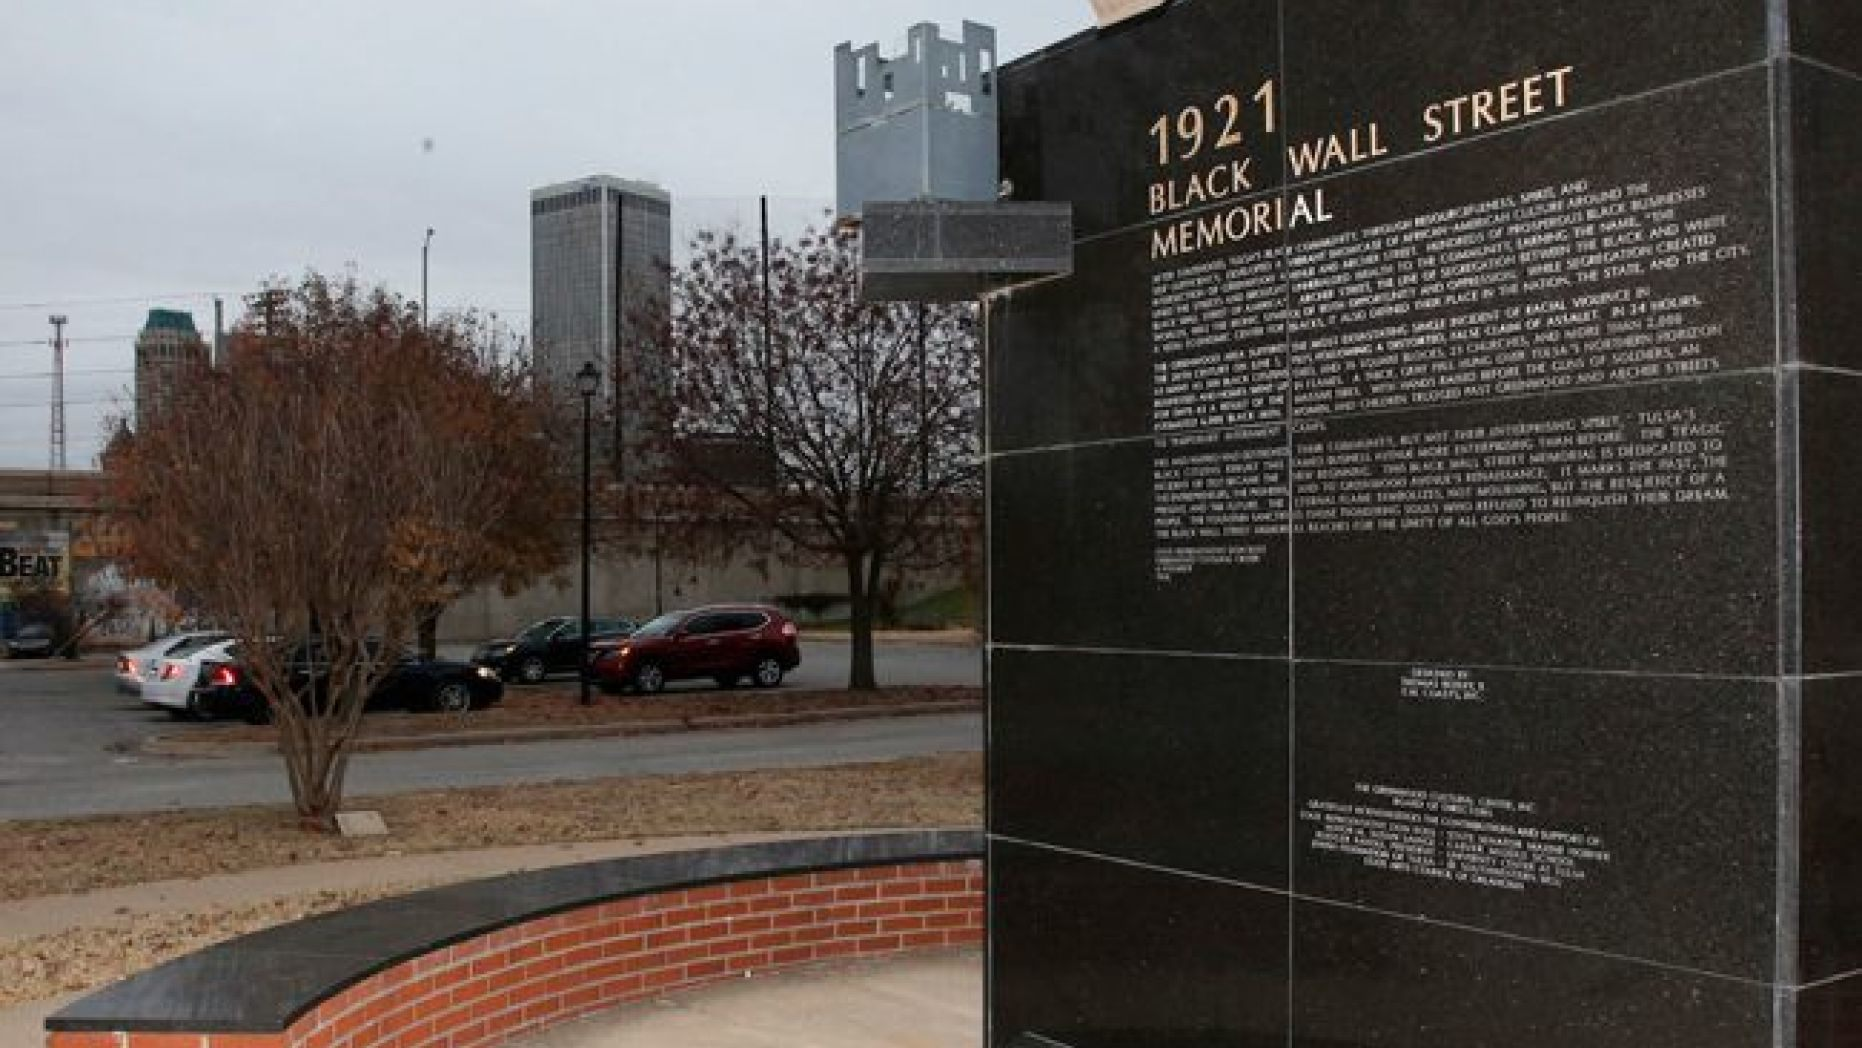 The Memorial created as a result of the Tulsa Race Reconciliation Act that was placed outside the Greenwood Cultural Center near downtown Tulsa, Oklahoma.